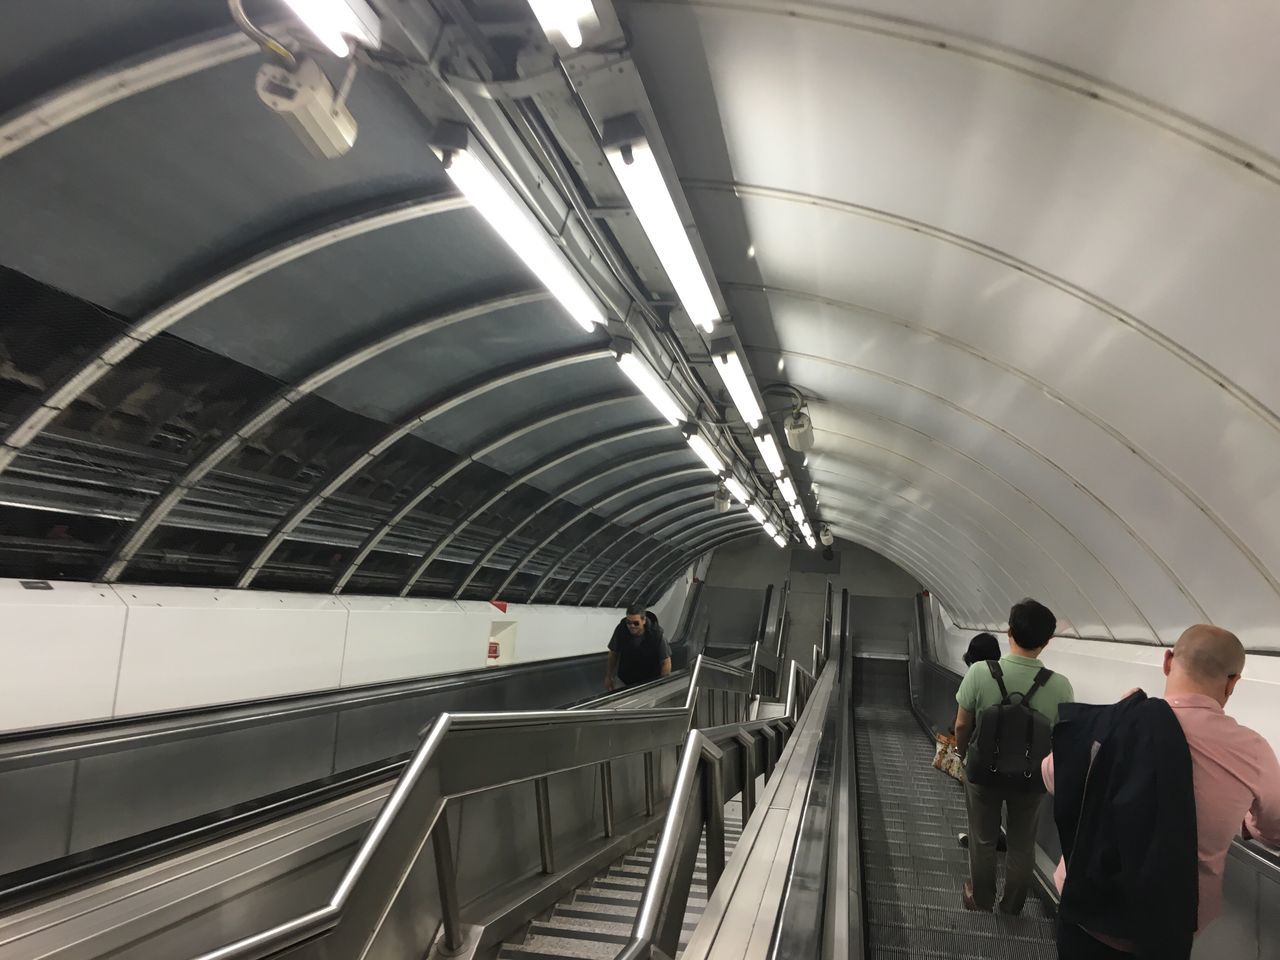 Going underground Underground Tube Tunnel People Escalators Lighting Stairs Stainless Steel  Transportation Transport Looking Down Stairs London Underground Perspective Leading Lines Arched Ceiling Metro Subway